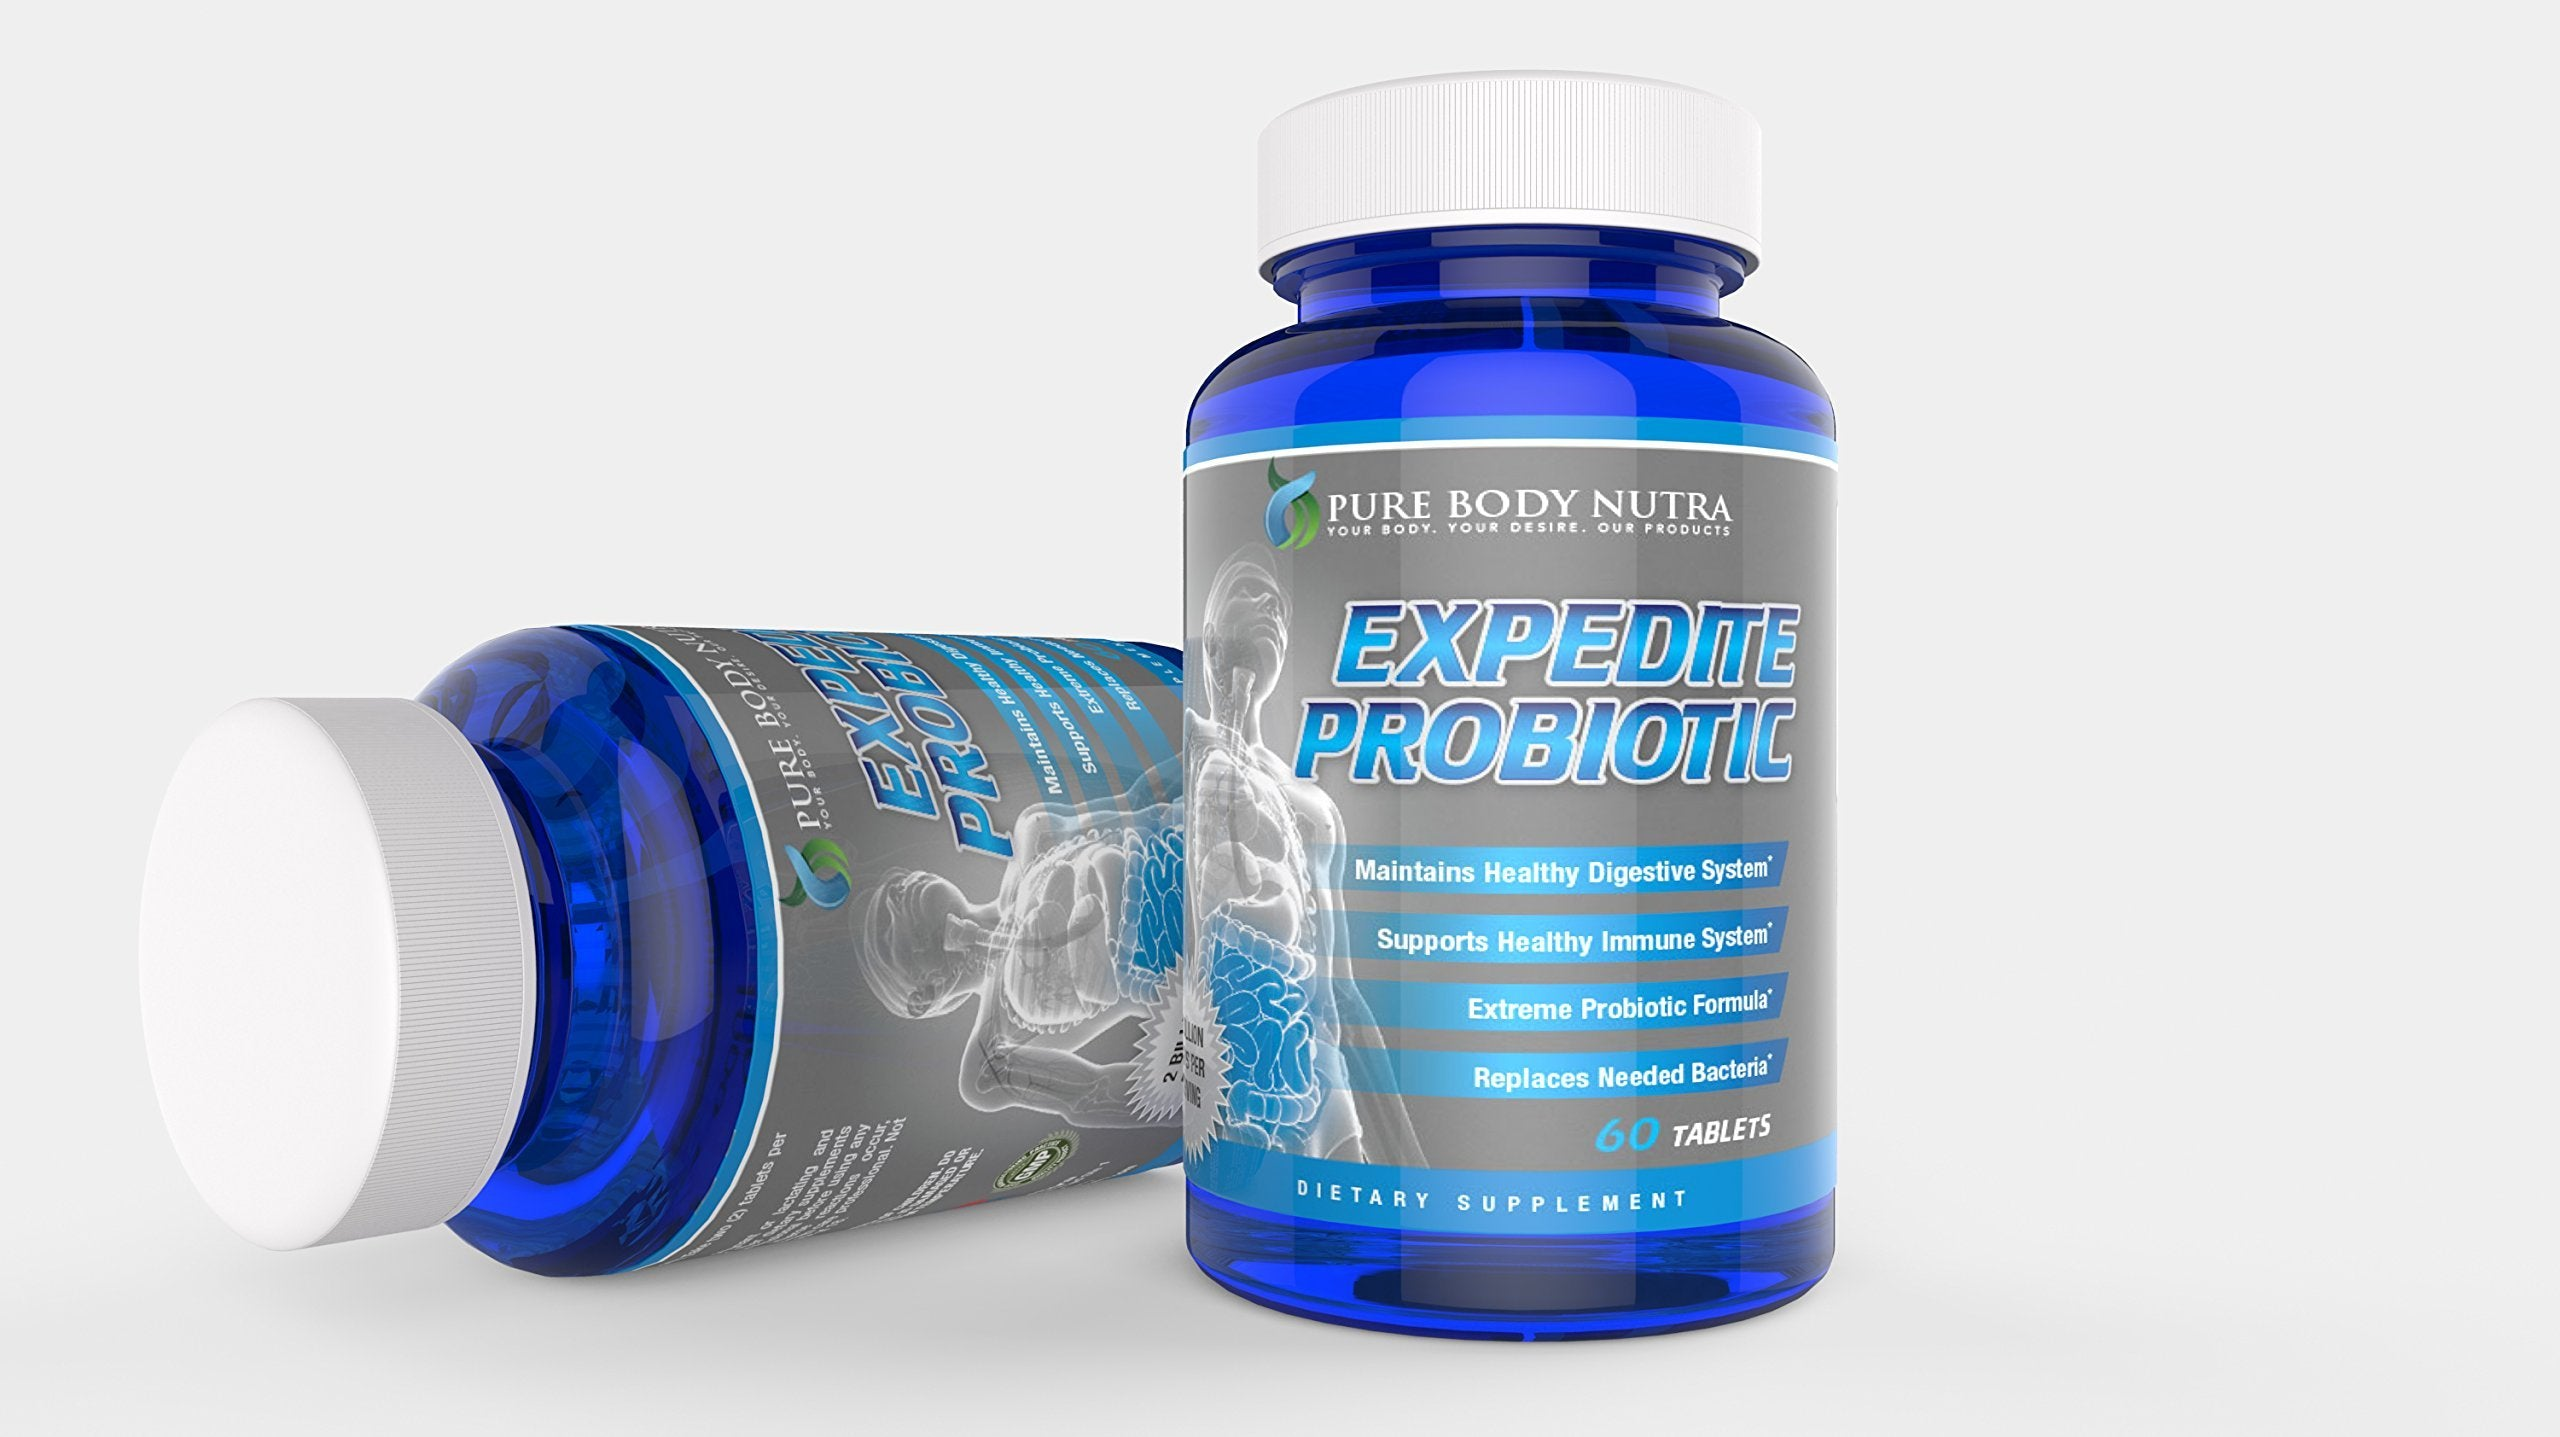 #1 Extreme Strength Probiotic Supplement - All Natural Probiotic Formula Promotes Optimal Health for adults of all ages. Safe Formula with Unique Is-2 , Nutra Flora P-95 and Billions of Live Cultures and Intestinal Flora in Every Serving. Pure Body Nut...